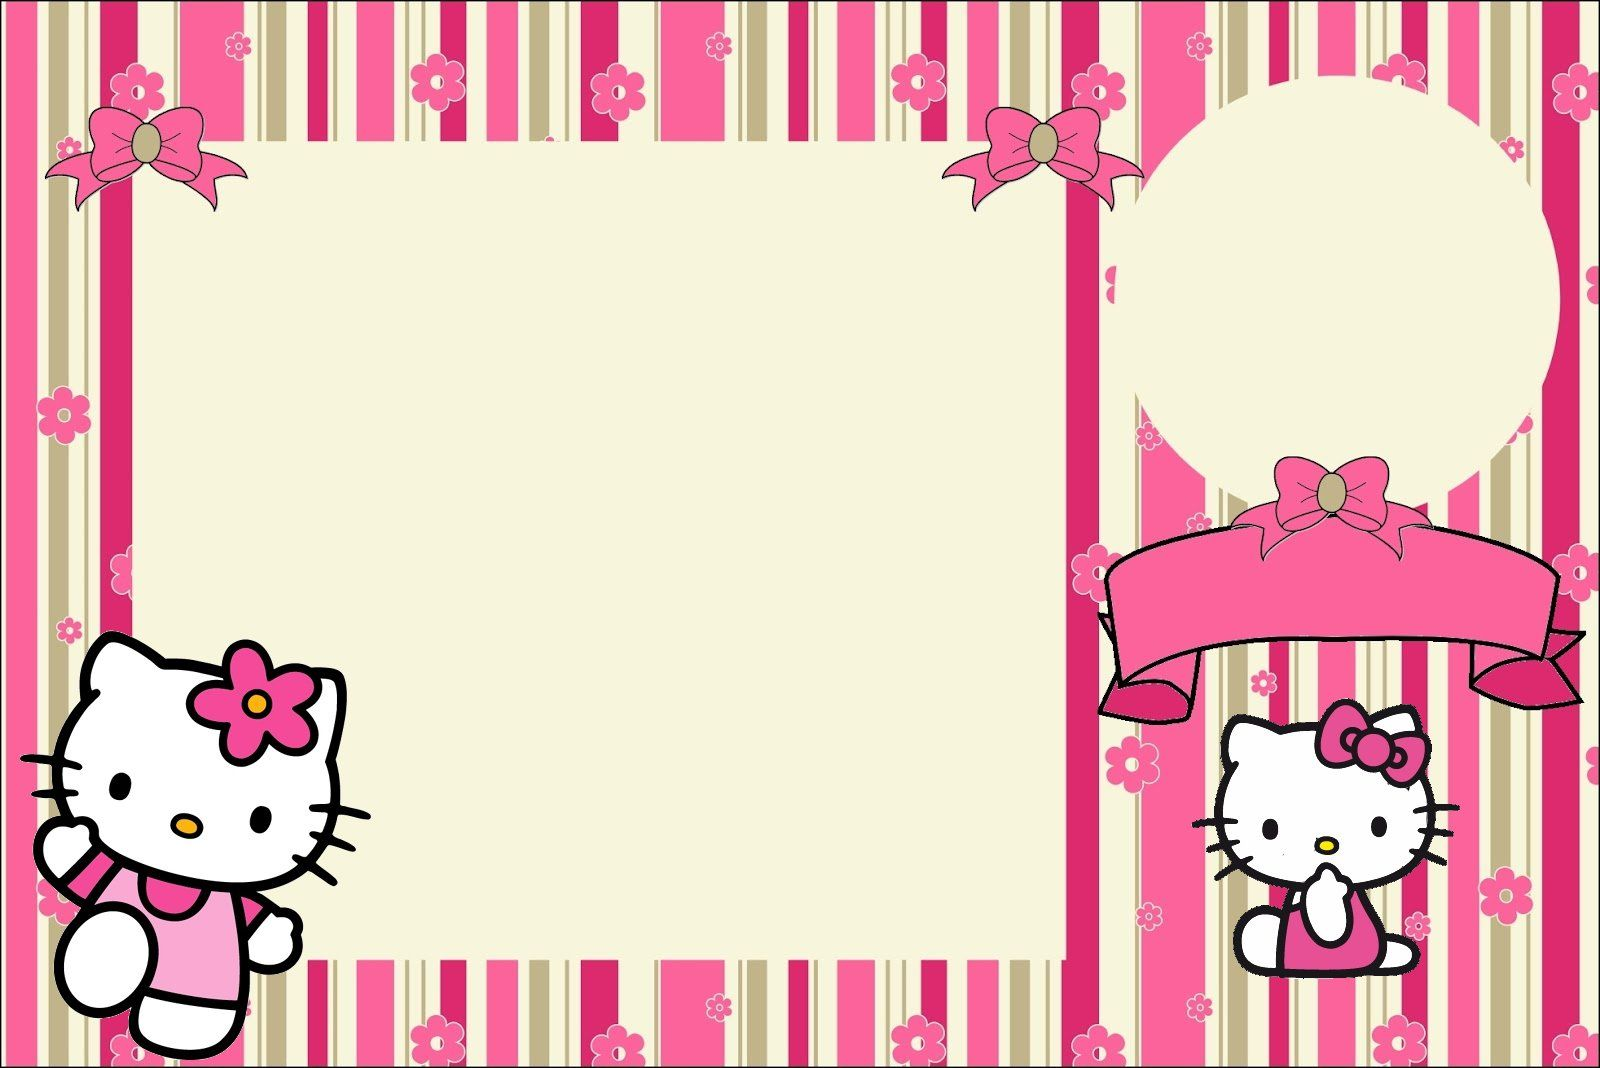 1 Convite10 Jpg 1600 1068 Hello Kitty Invitations Hello Kitty Invitation Card Hello Kitty Birthday Invitations